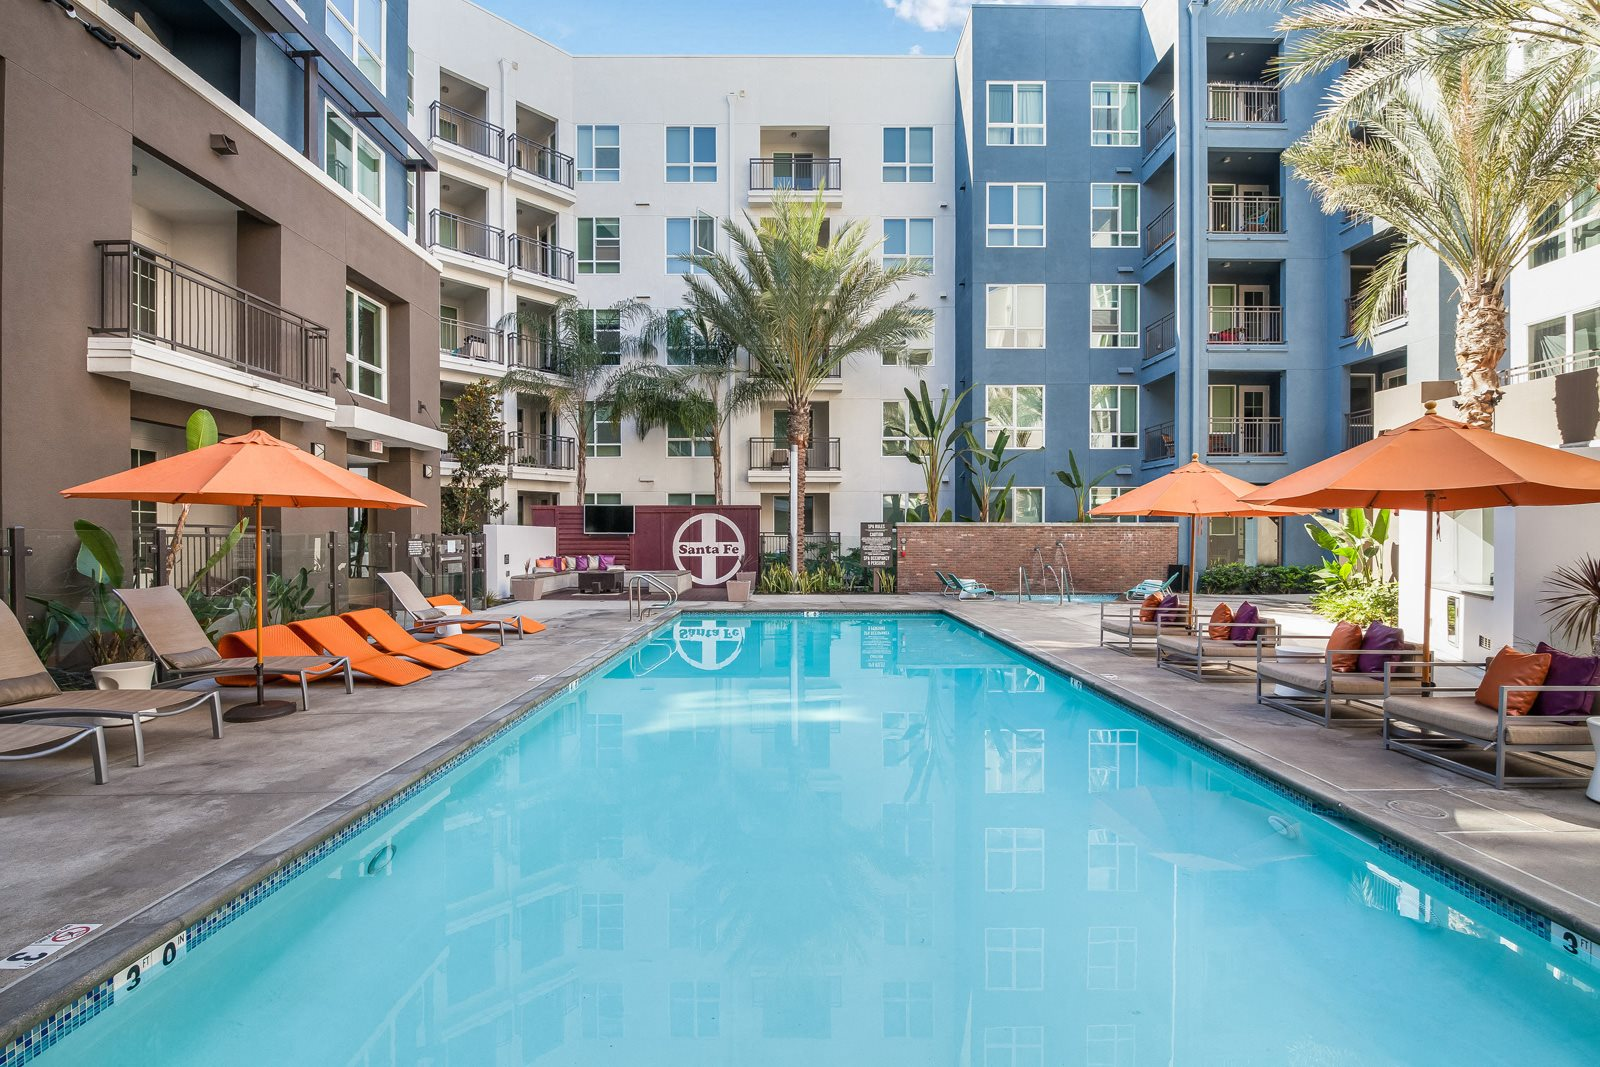 Resort-Style Apartment Community at Malden Station by Windsor, Fullerton, 92832